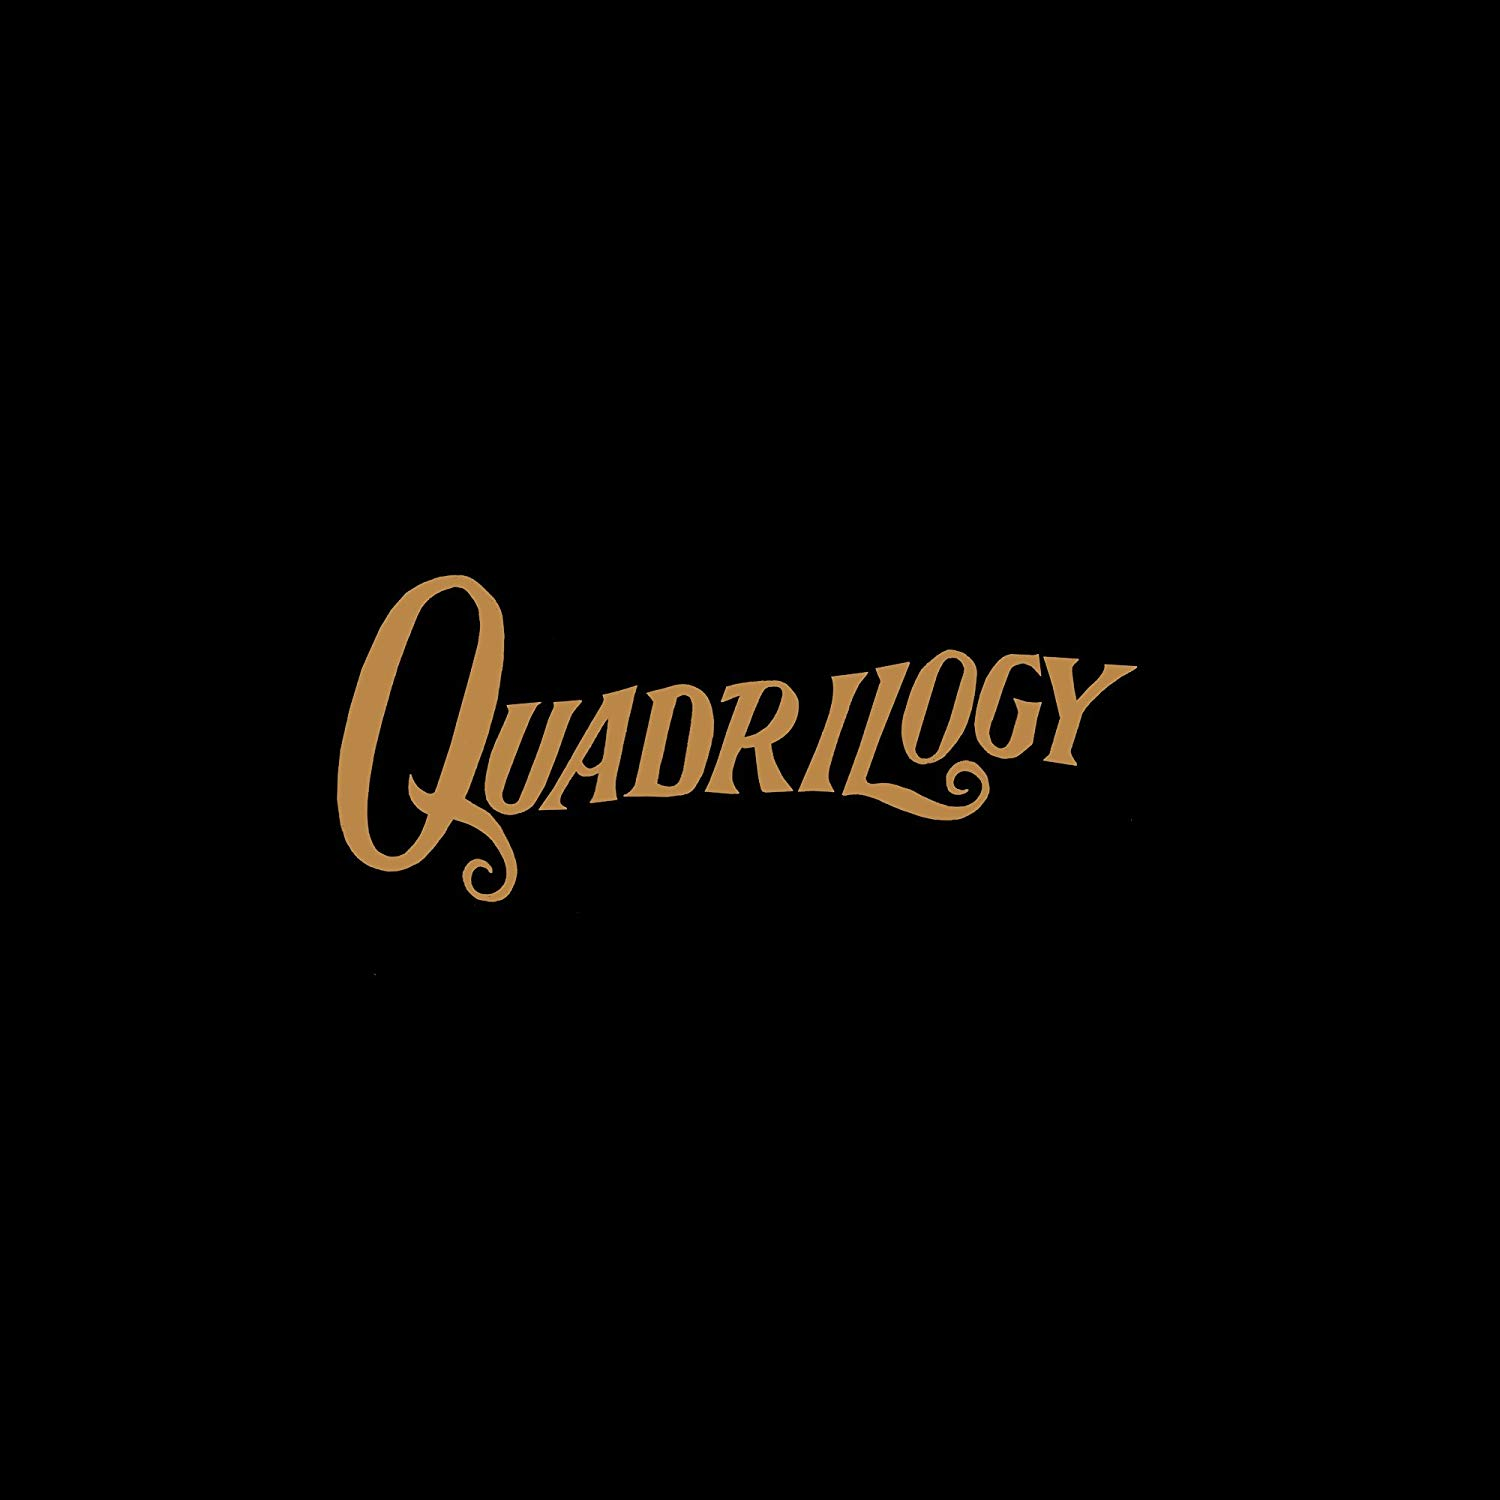 QUADRILOGY